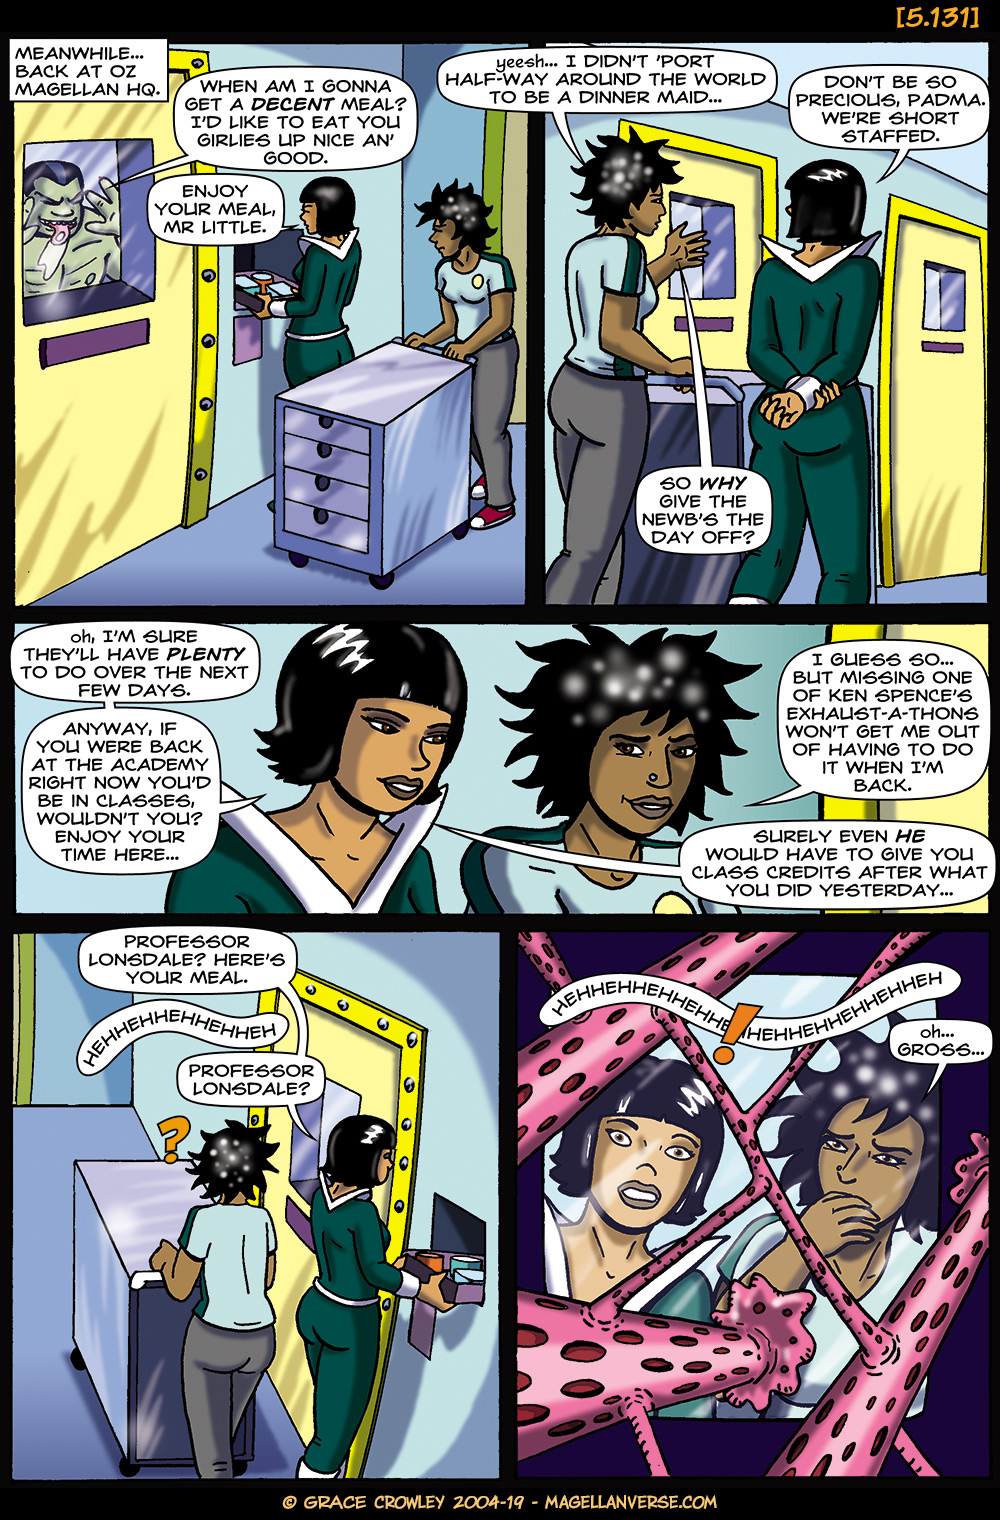 Page 5.131